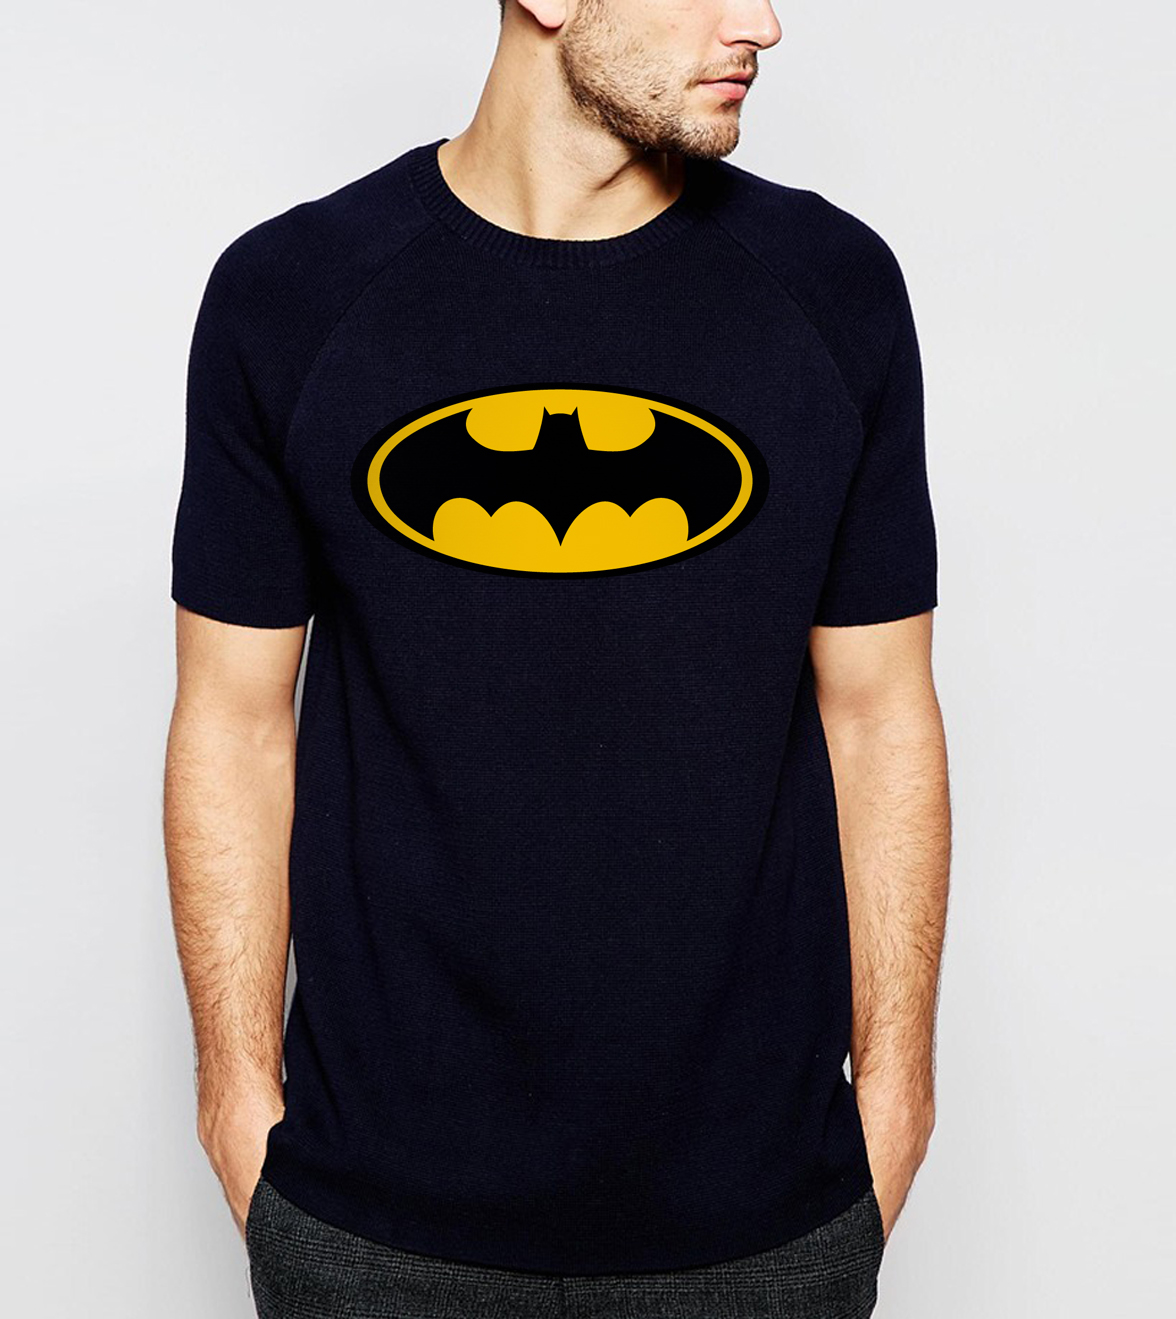 hot sale for fans Cartoon Batman Men T Shirts 2017 Summer Nes